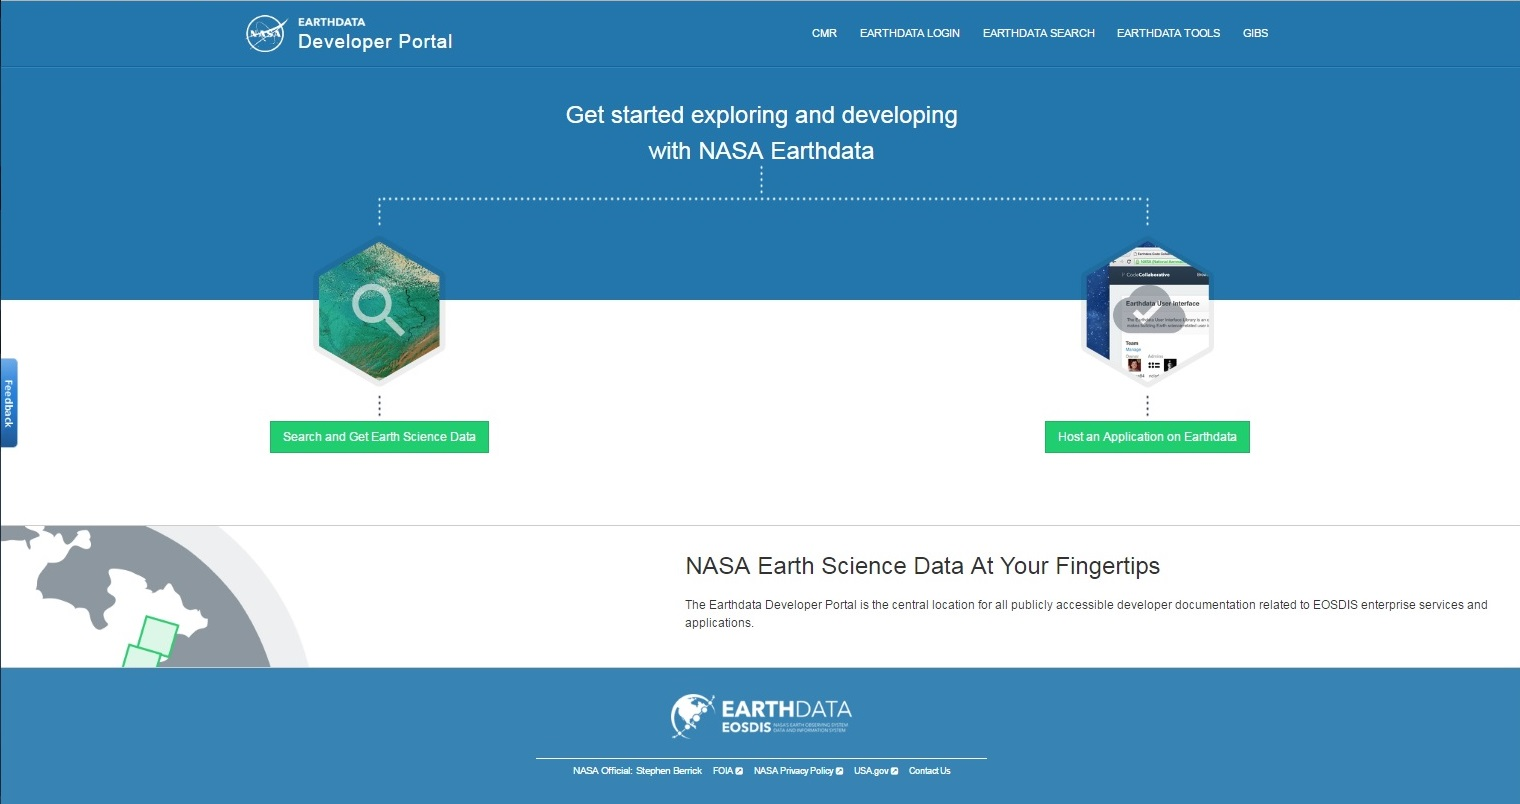 Earthdata Developer Portal